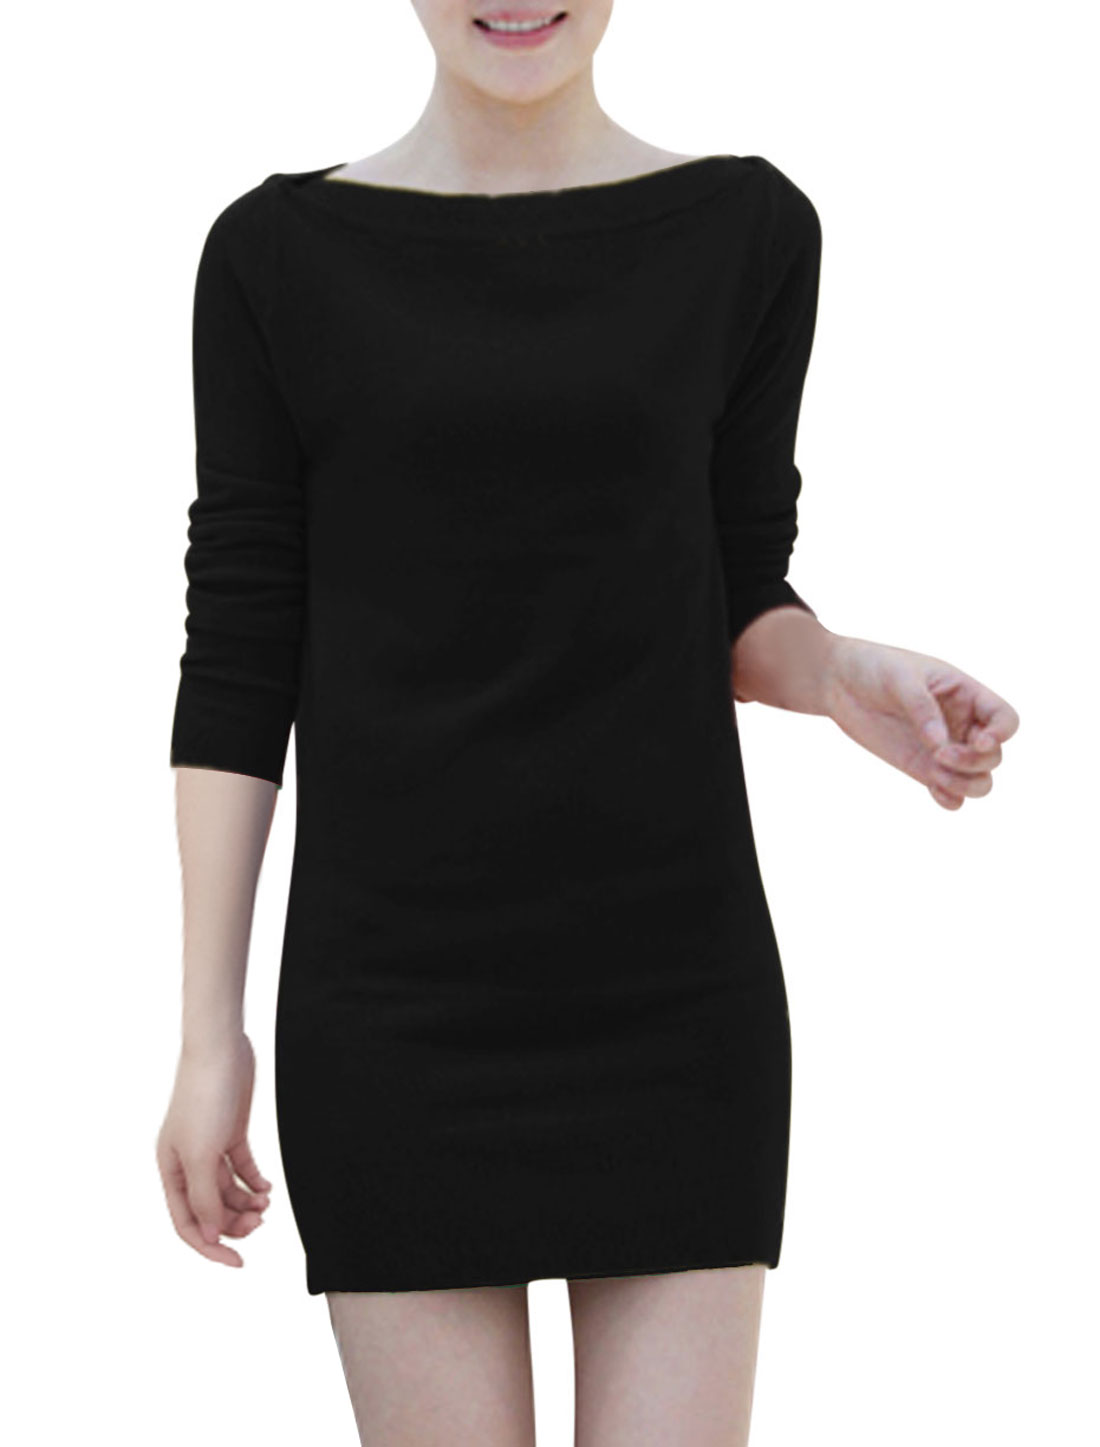 Boat Neck Two Ways Wearing Casual Knit Sheath Dress for Women Black S